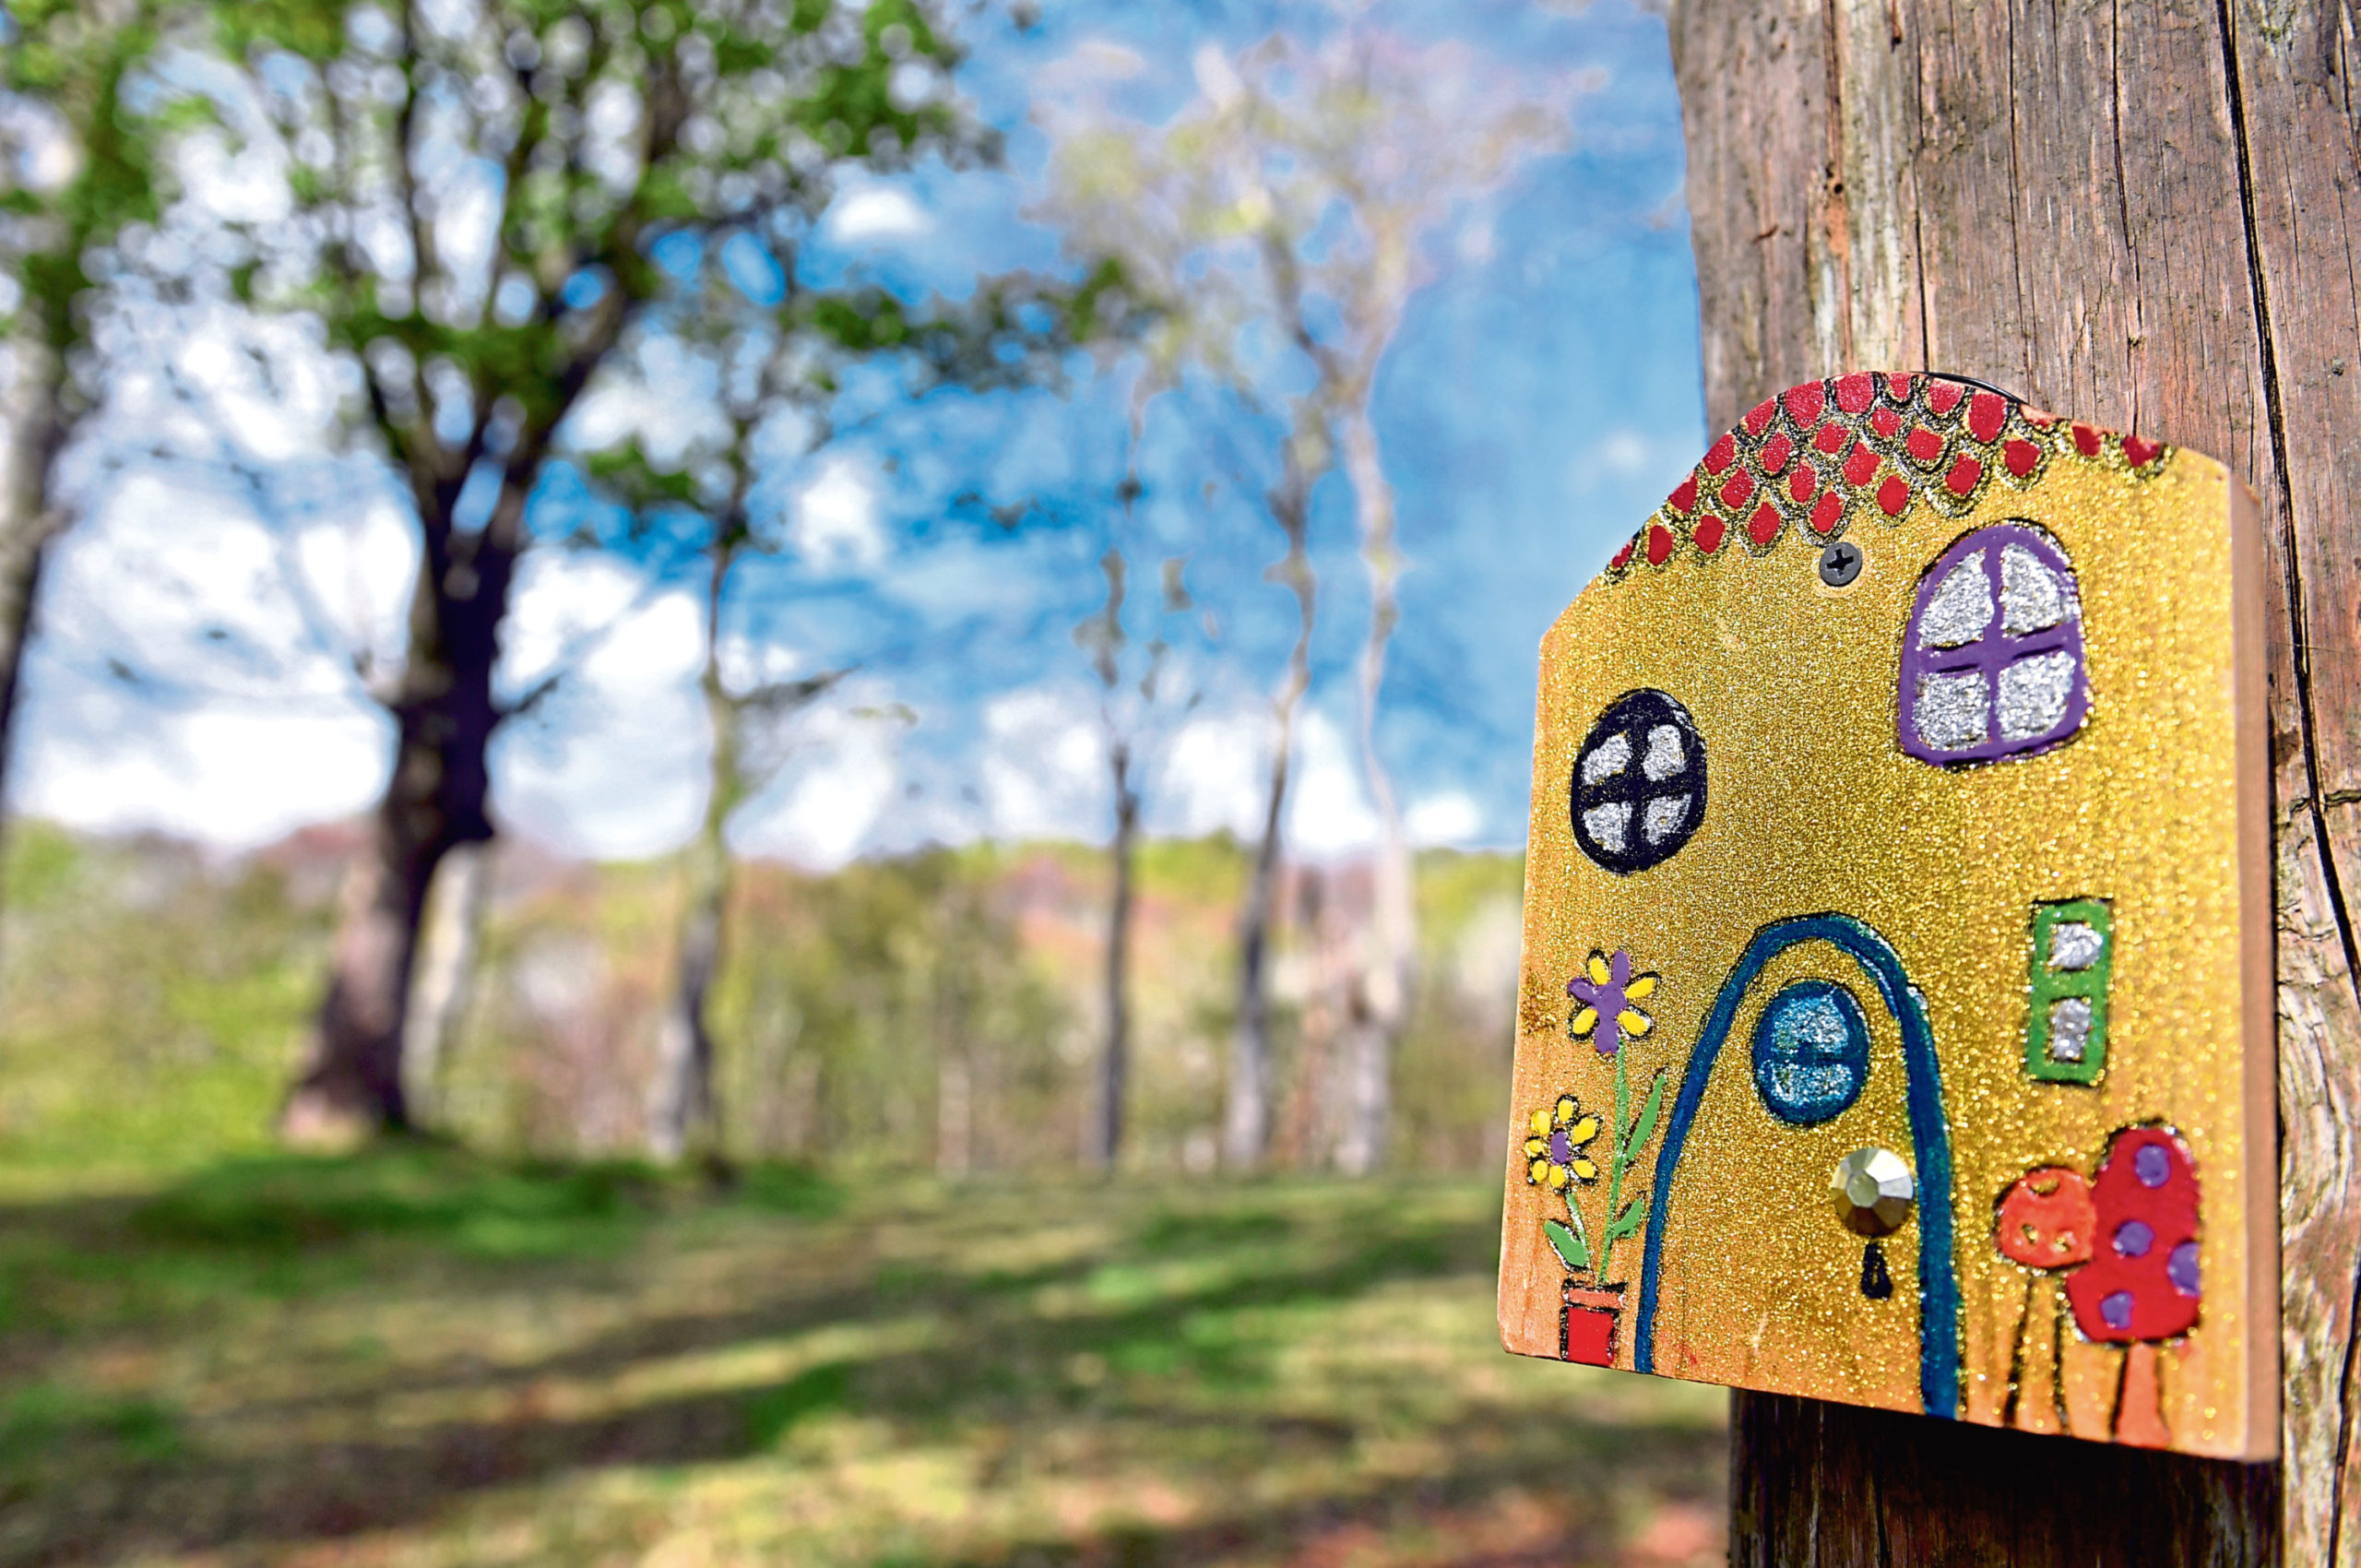 One of the fairy doors in Bridge of Don. Picture by Kami Thomson